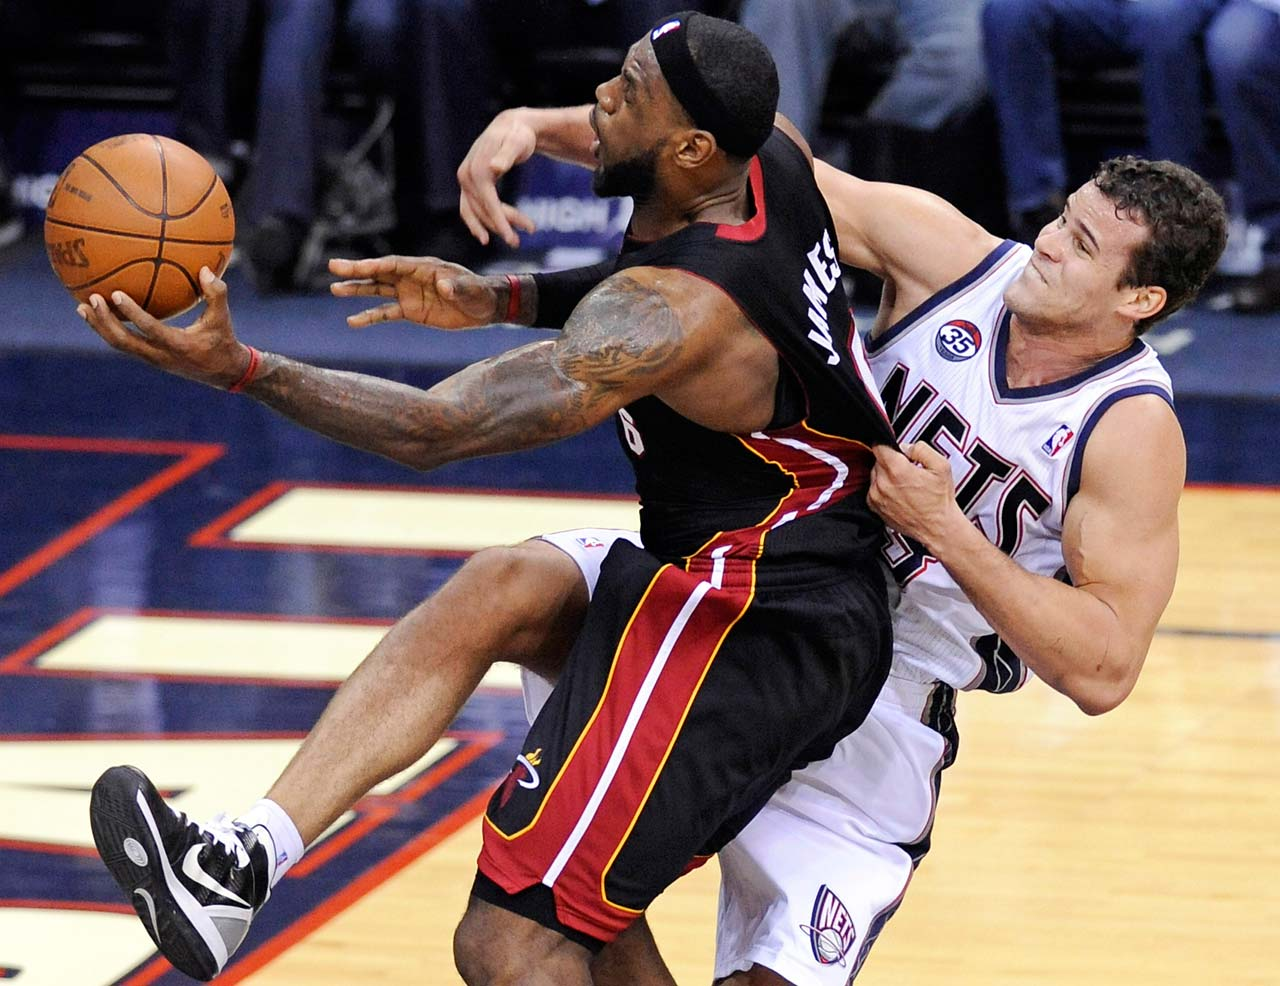 LeBron James is fouled by New Jersey Nets forward Kris Humphries during a Jan. 7, 2012, game in Newark, N.J.